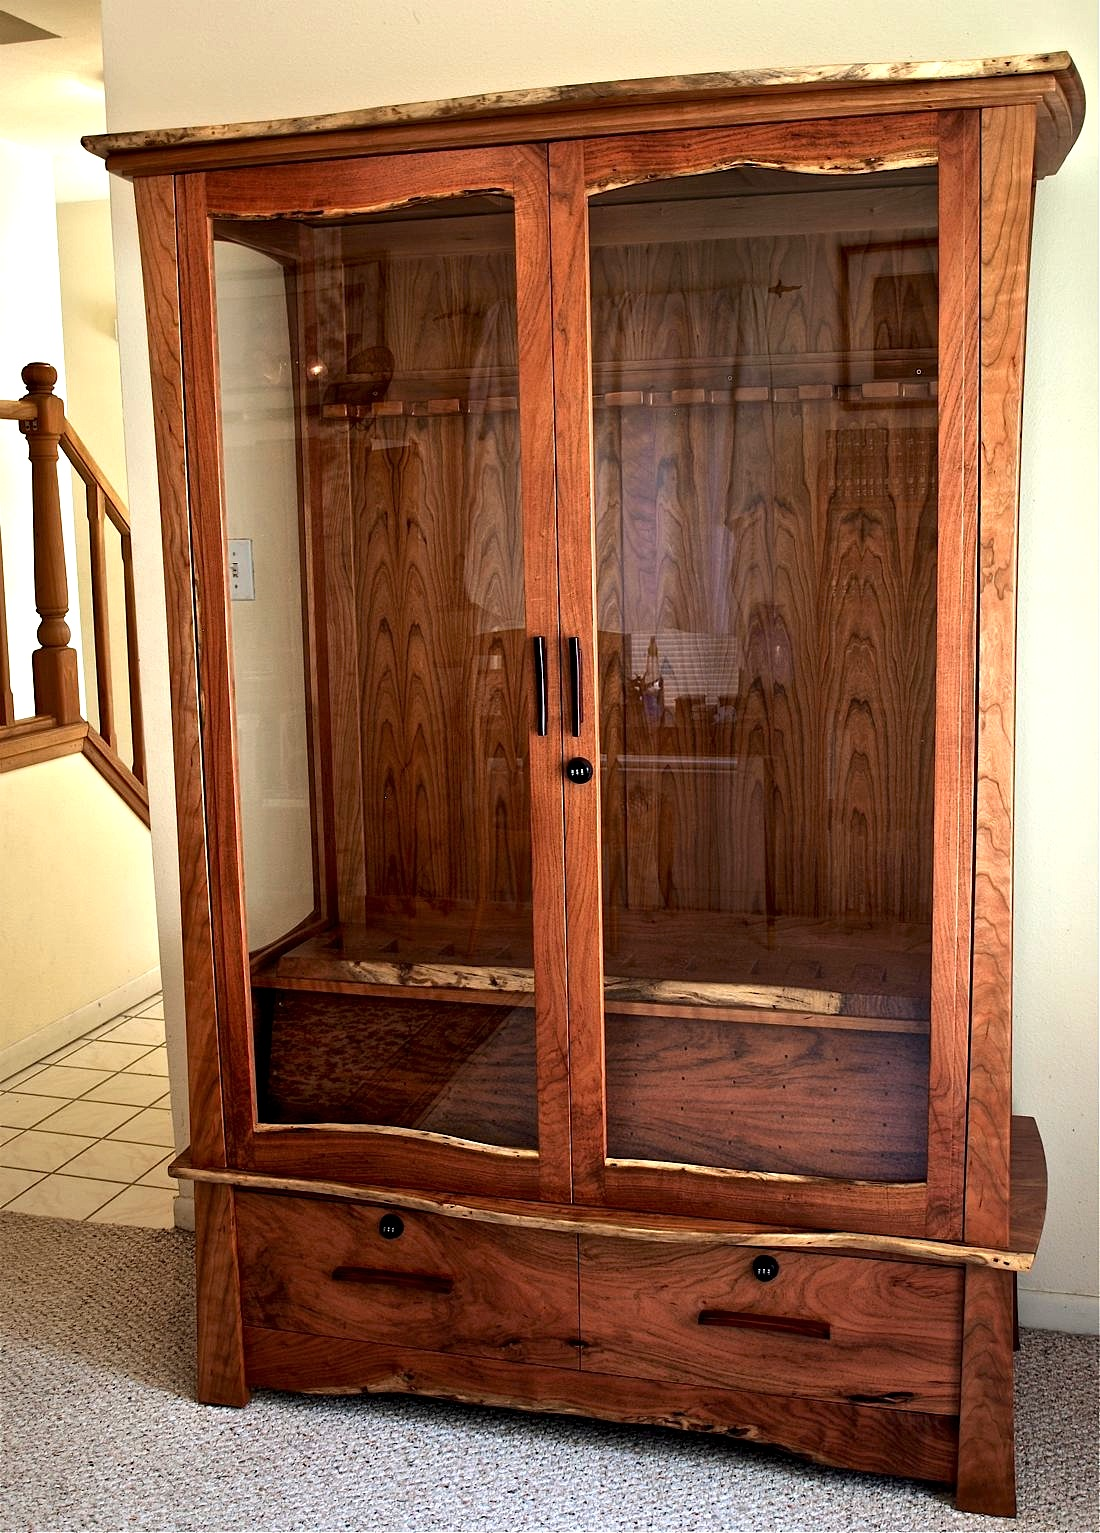 Mesquite amp Cherry Gun Cabinet Louis Fry A Furniture Makers Blog